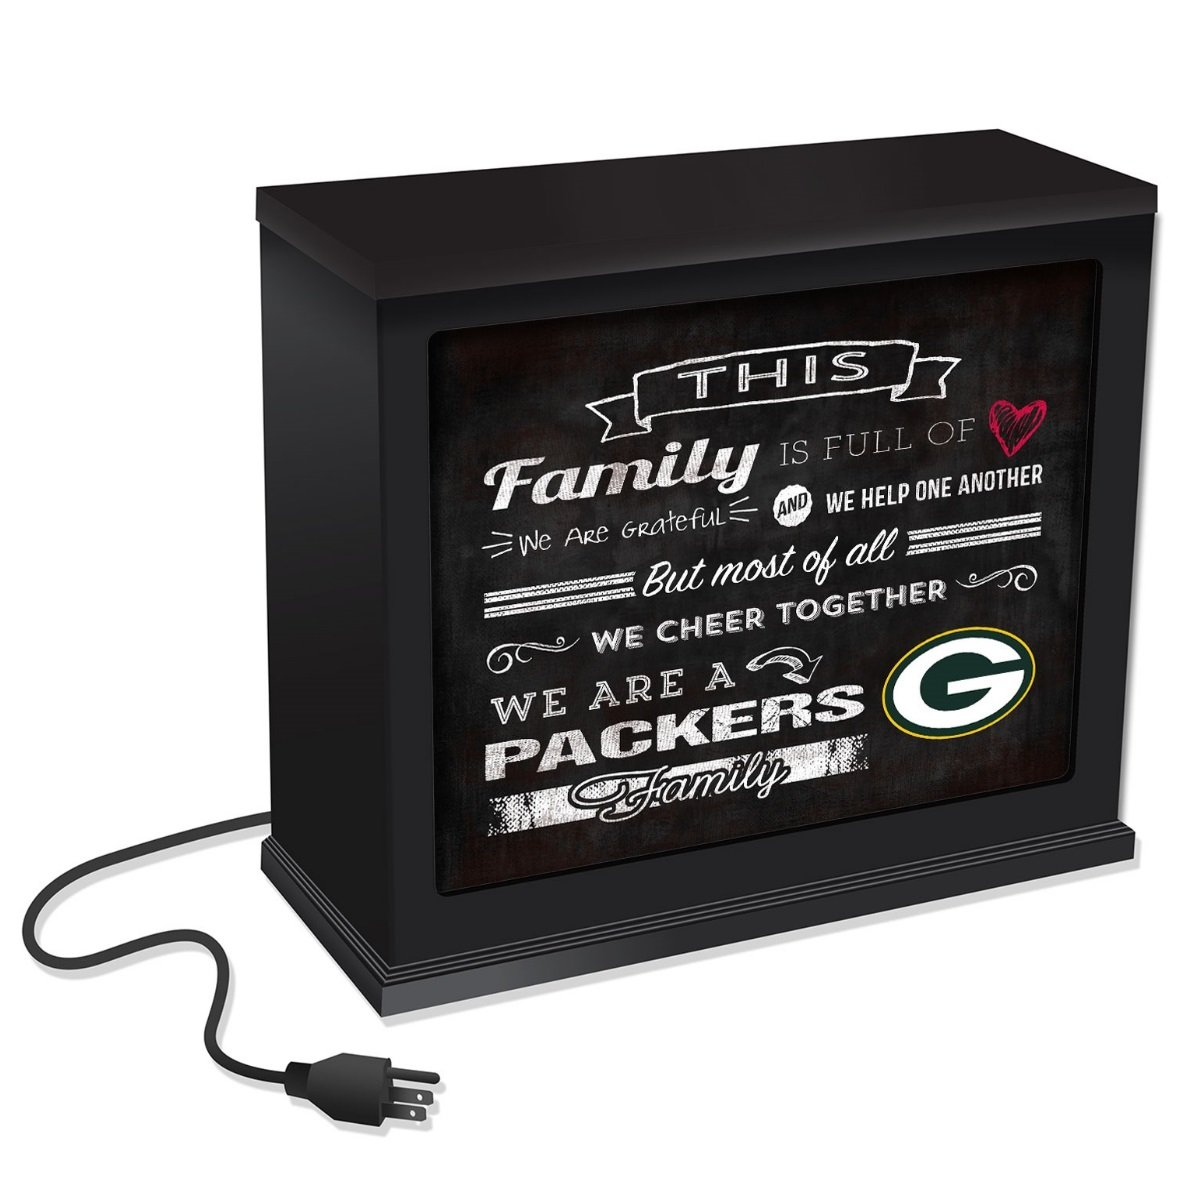 KH Sports Fan 1012100618 9.75x7.75 Green Bay Packers Family Cheer Acrylic NFL Art Plaque